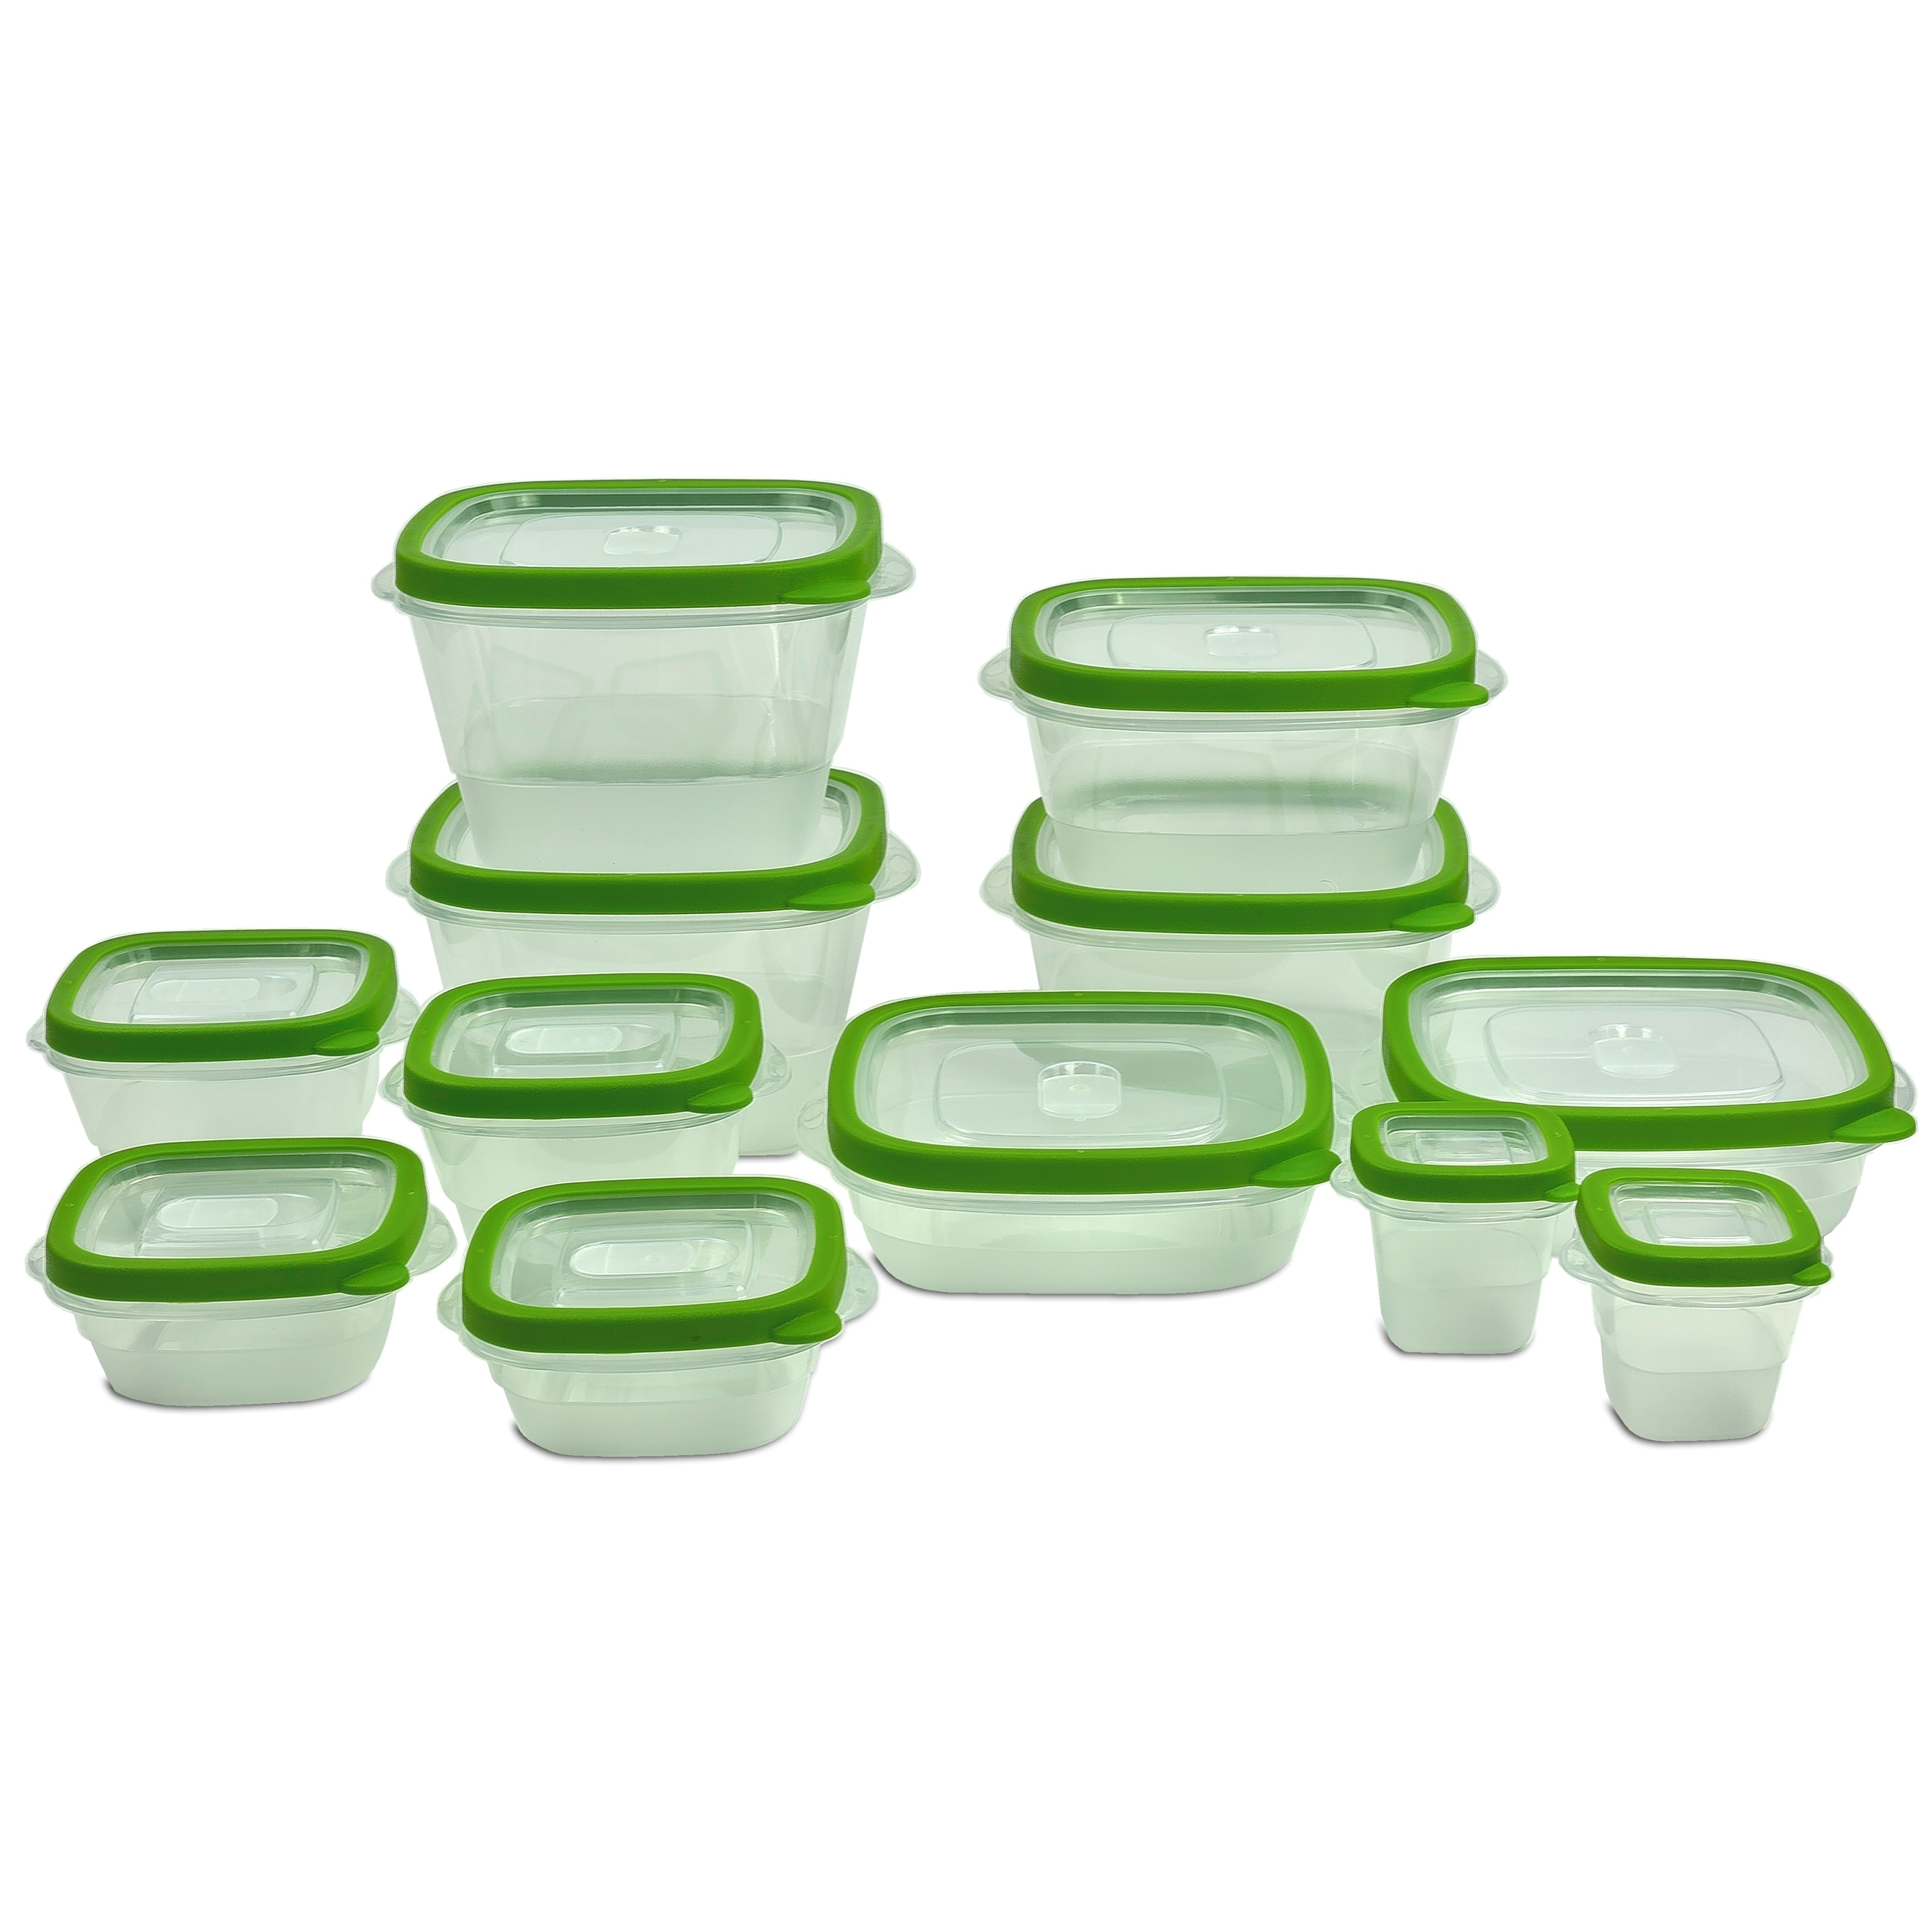 Shop 24 Piece Plastic Food Storage Containers Set with Vents and Air